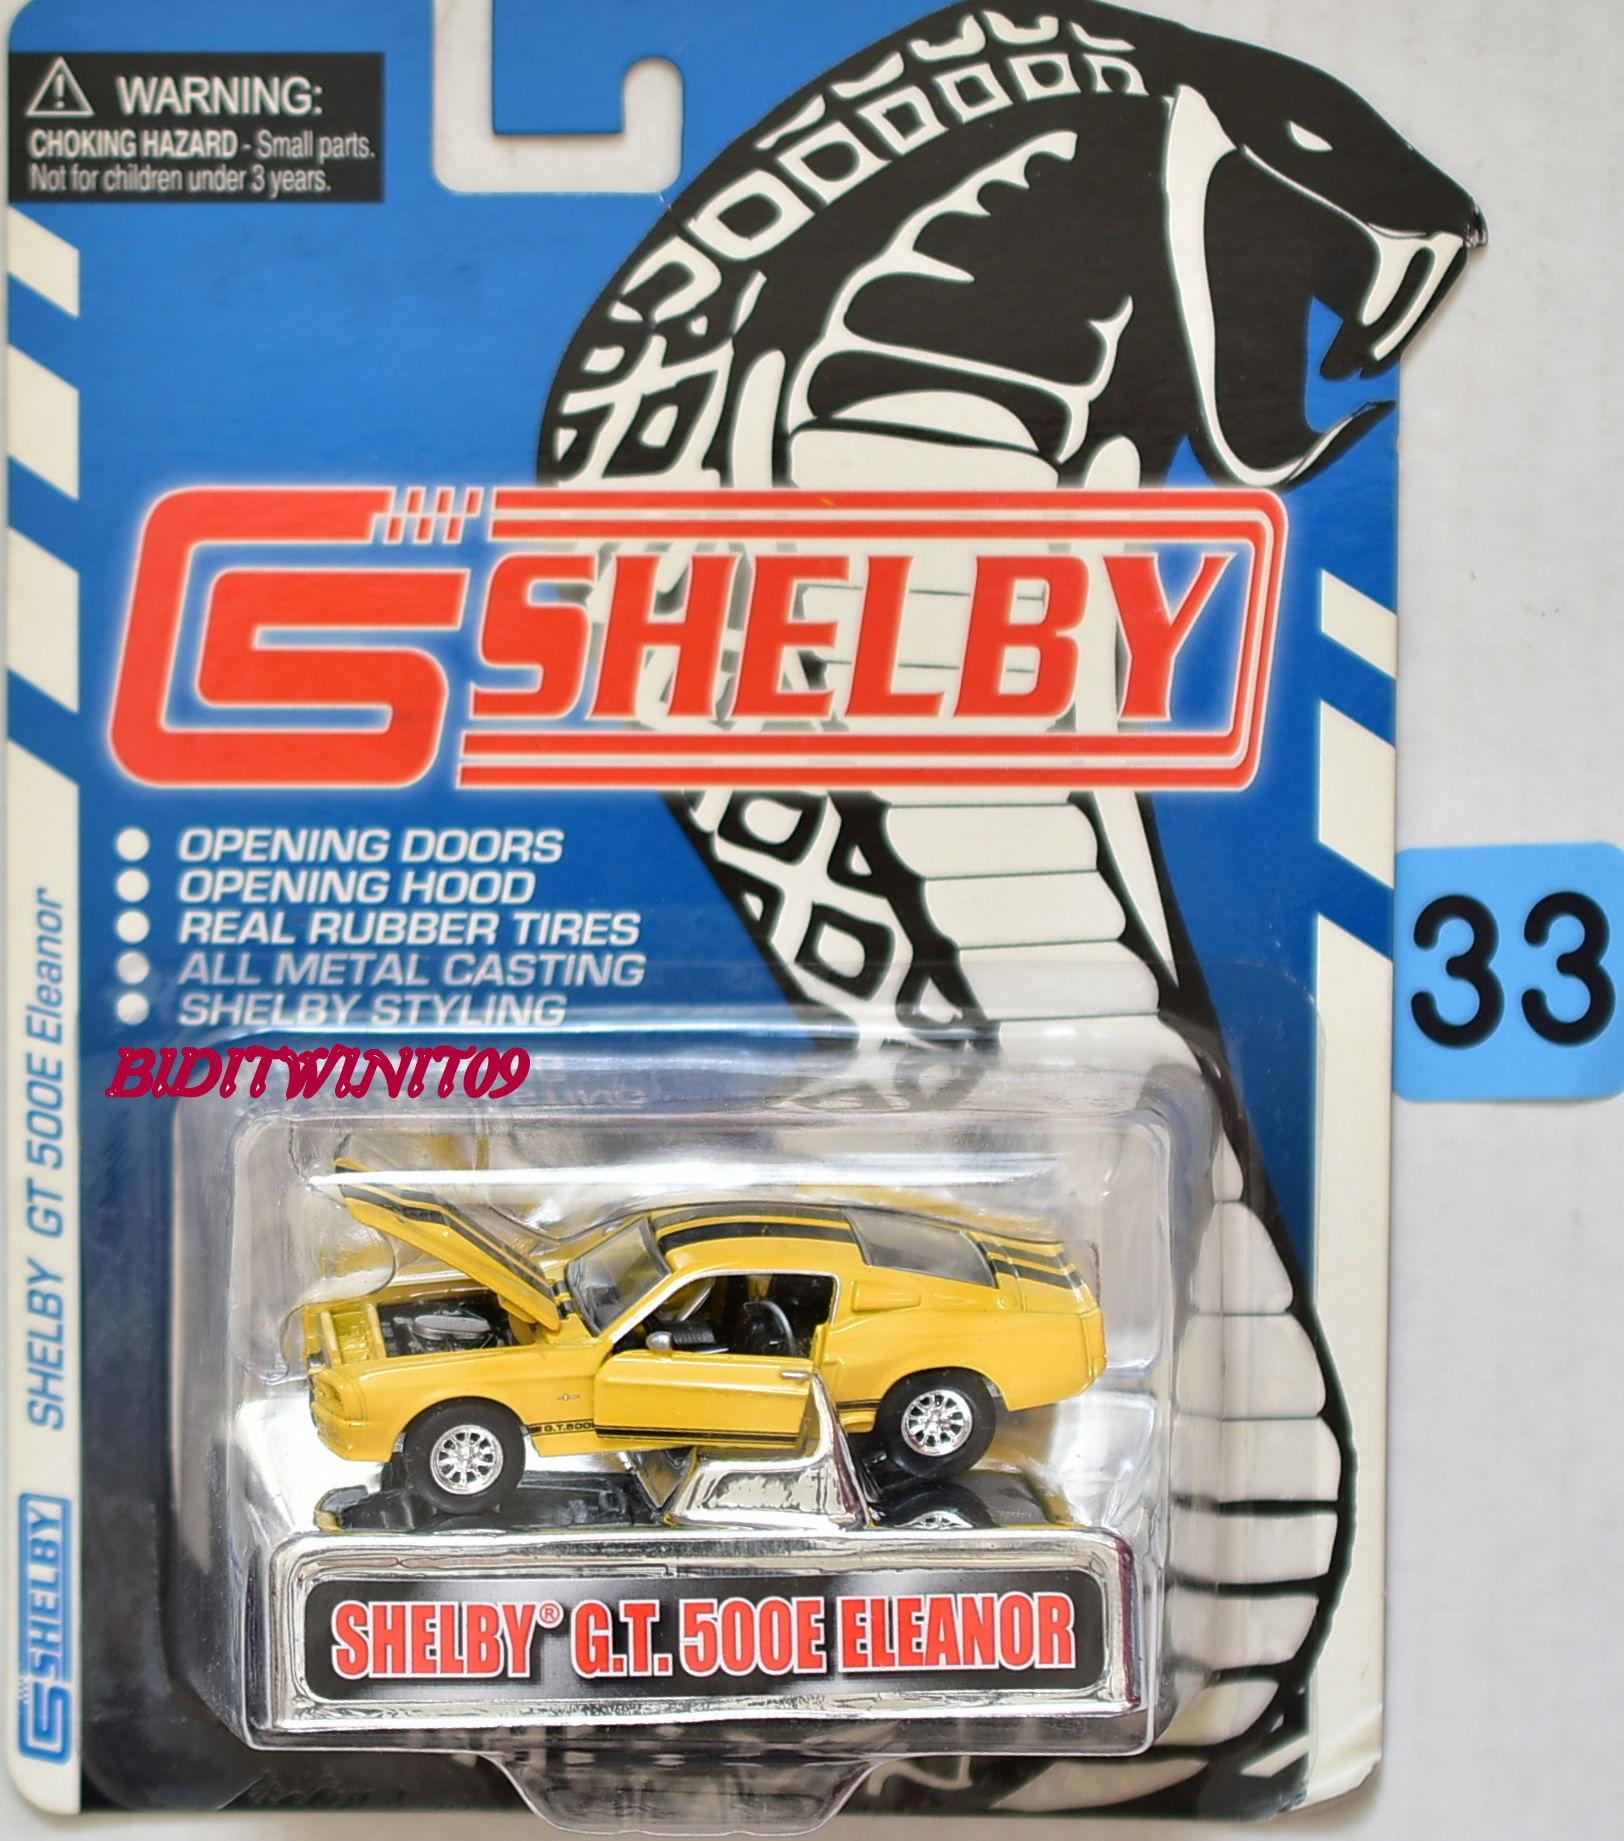 SHELBY GT 500E ELEANOR 1/64 RR TIRES OPEN HOOD AND DOORS E+